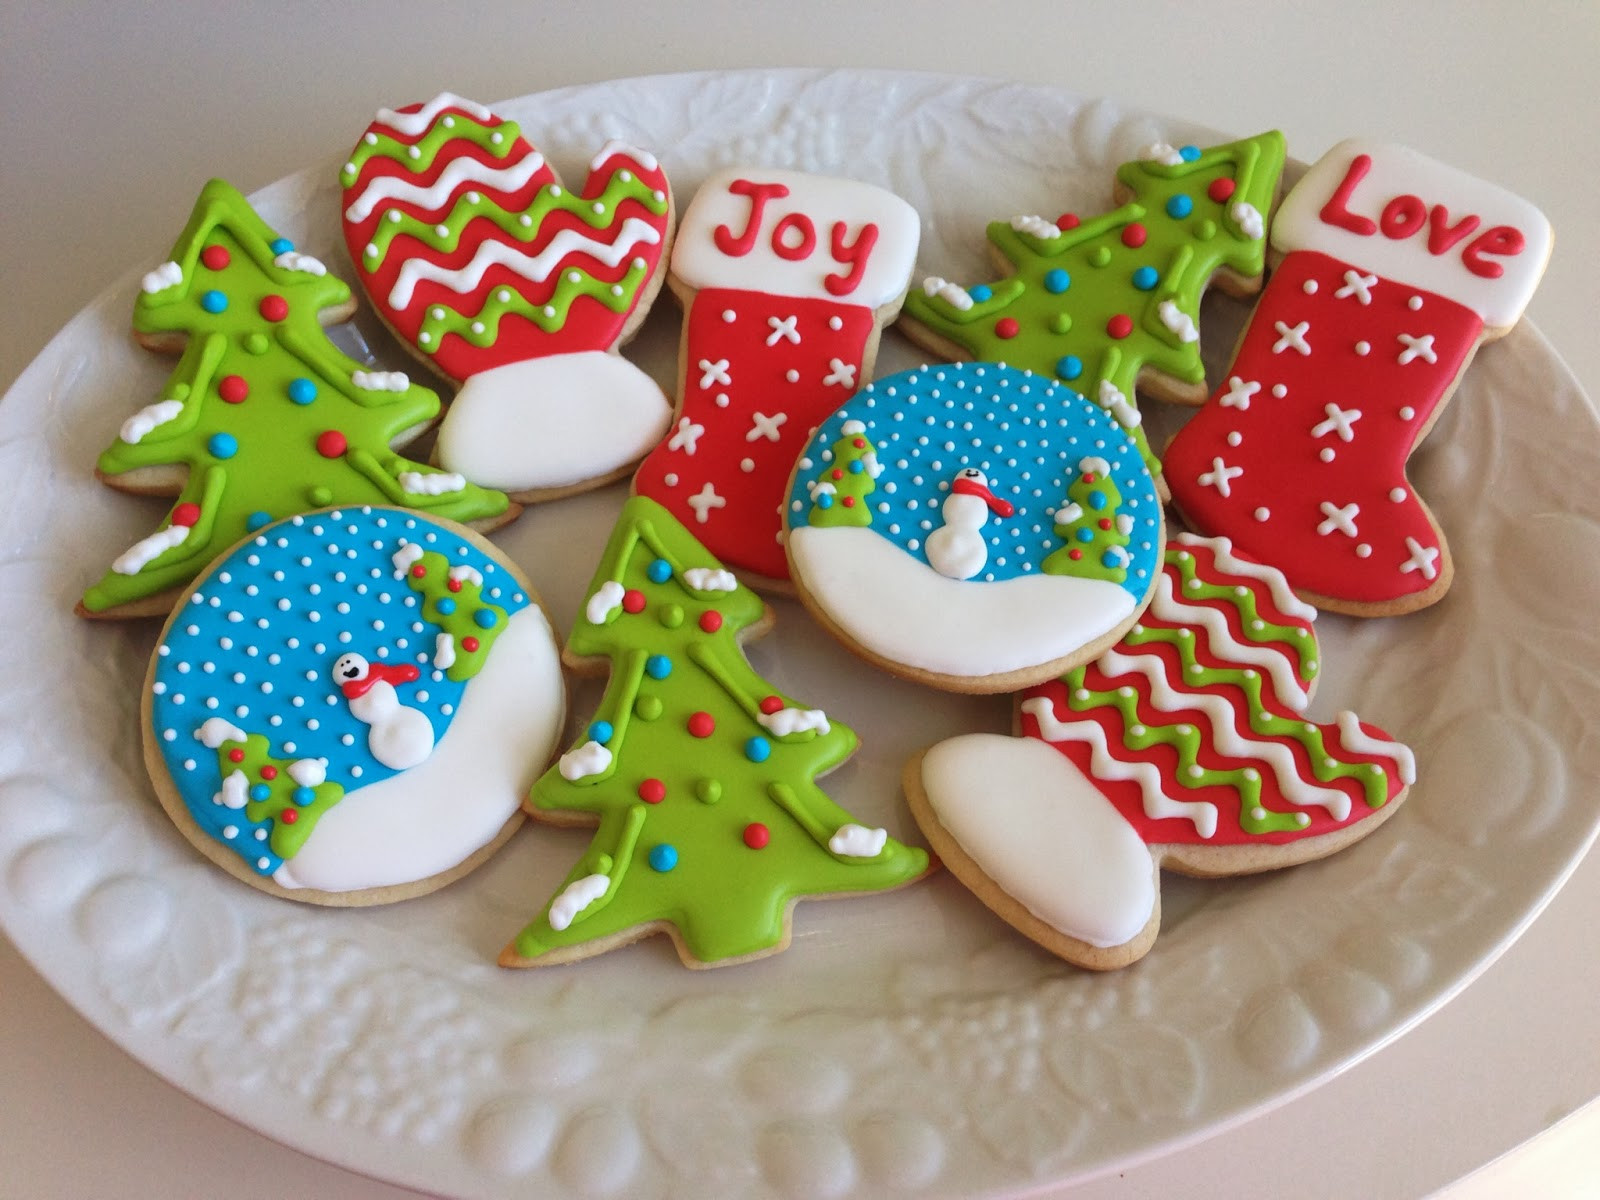 Frosting For Christmas Cookies  monograms & cake Christmas Cut Out Sugar Cookies with